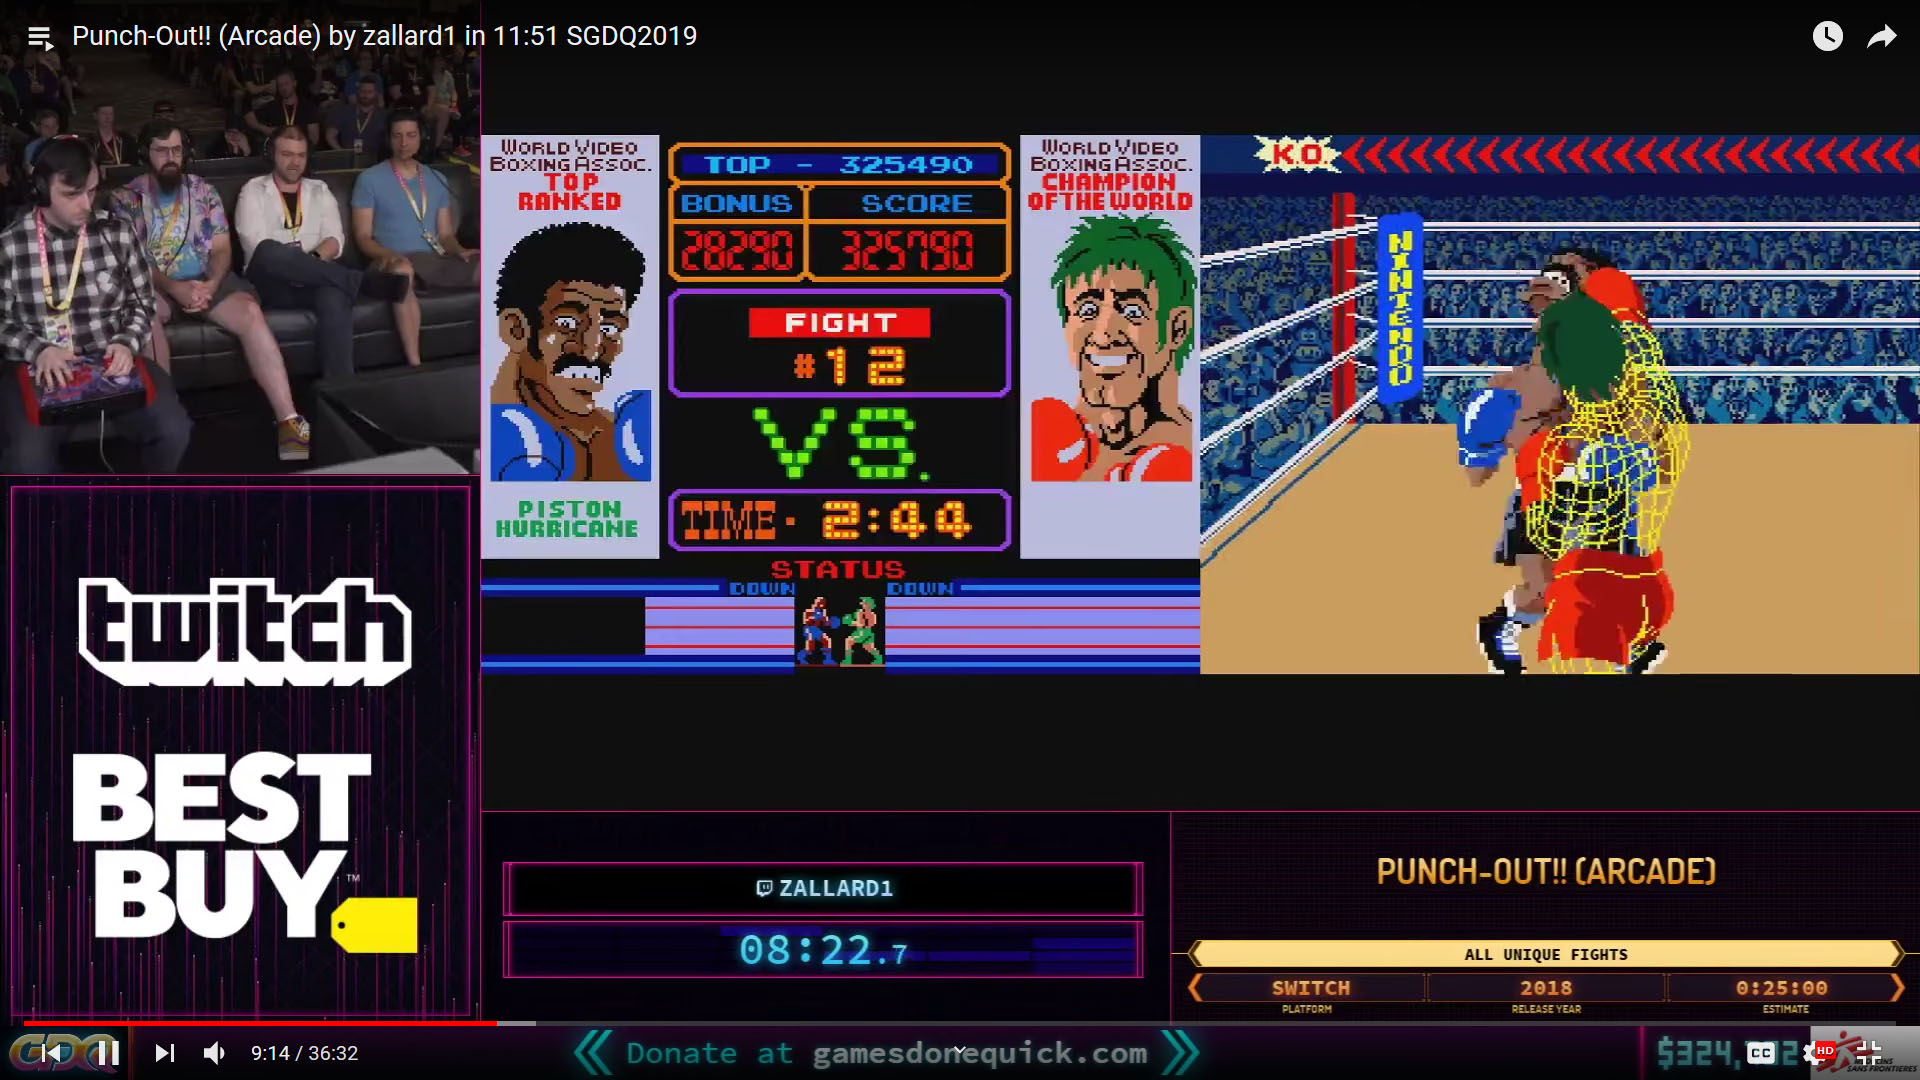 Punch-Out Arcade All Unique Fights